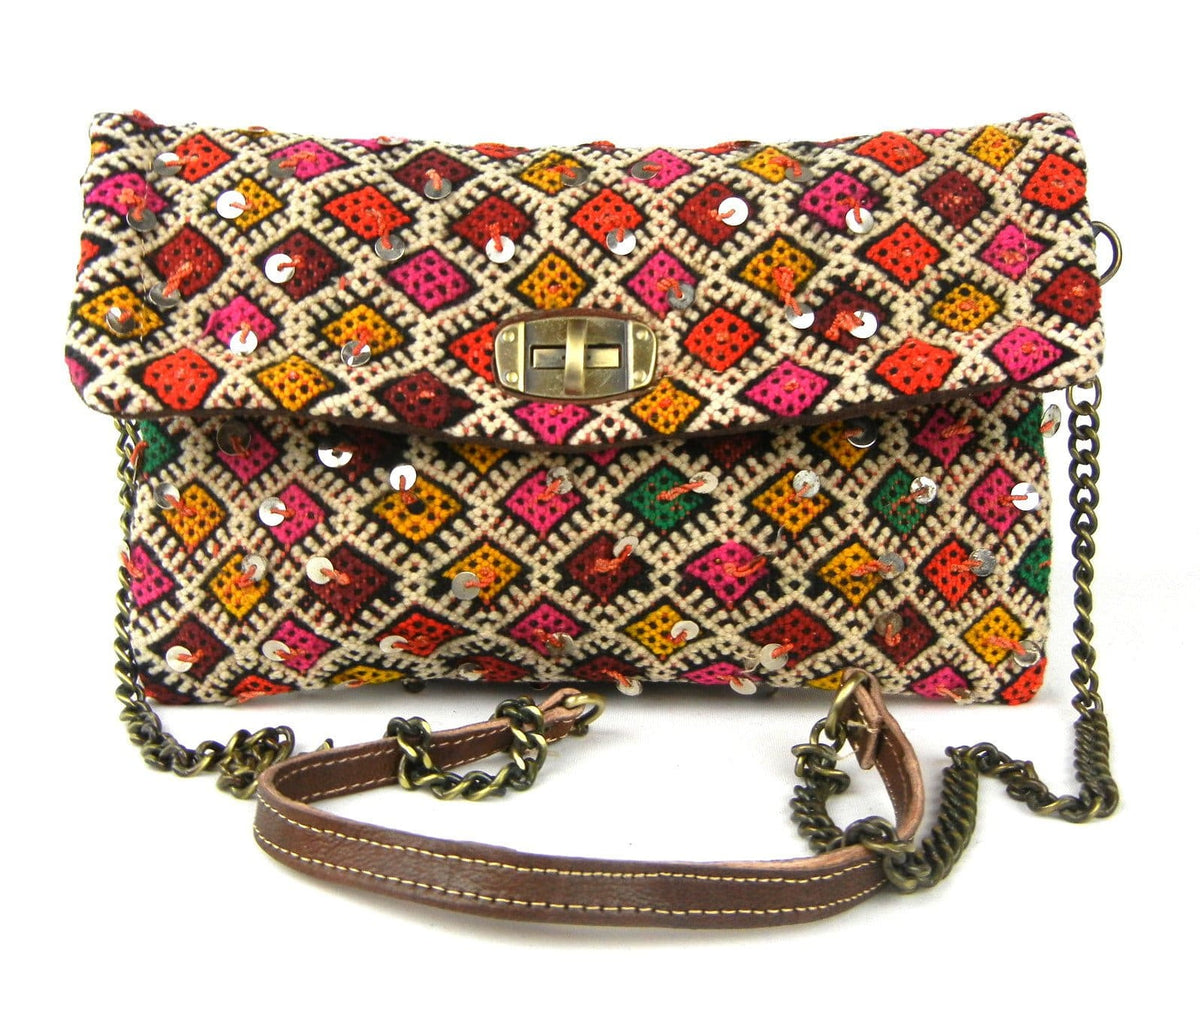 Kilim Clutch - Chainlink Crossbody #8